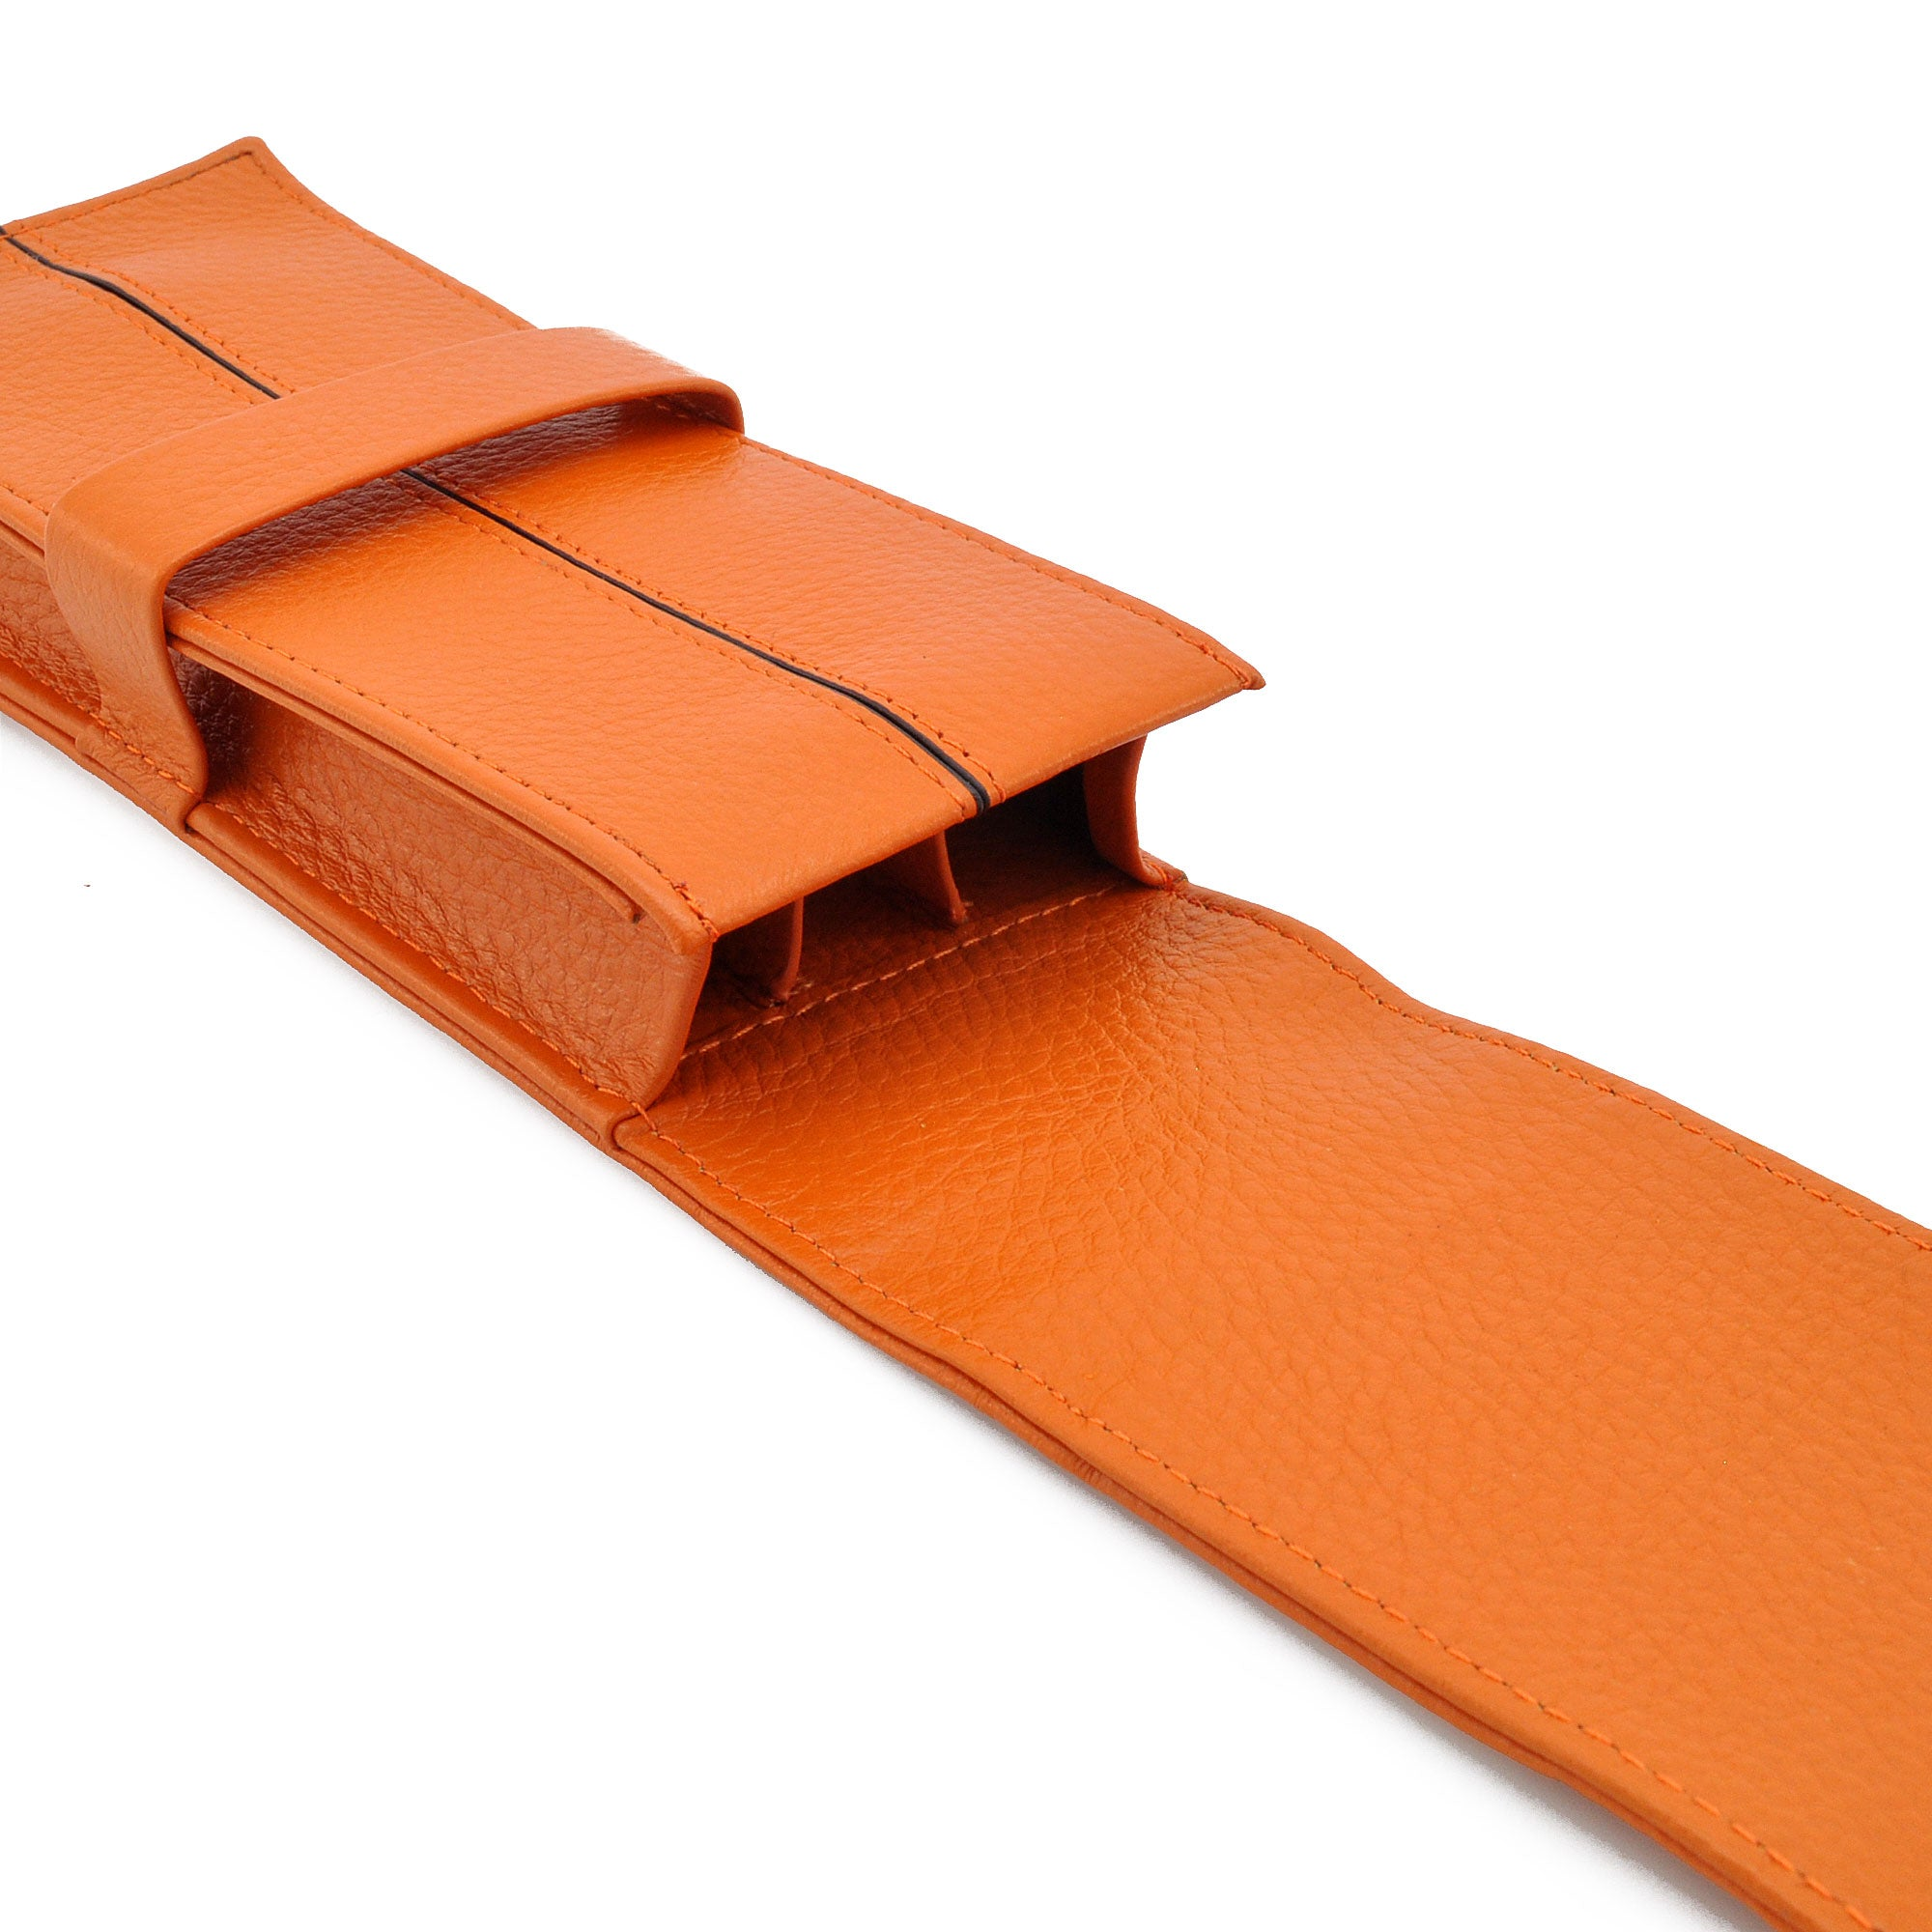 Penbrace 3 Pen Pouch - Orange Pen Case - Wancher Pen